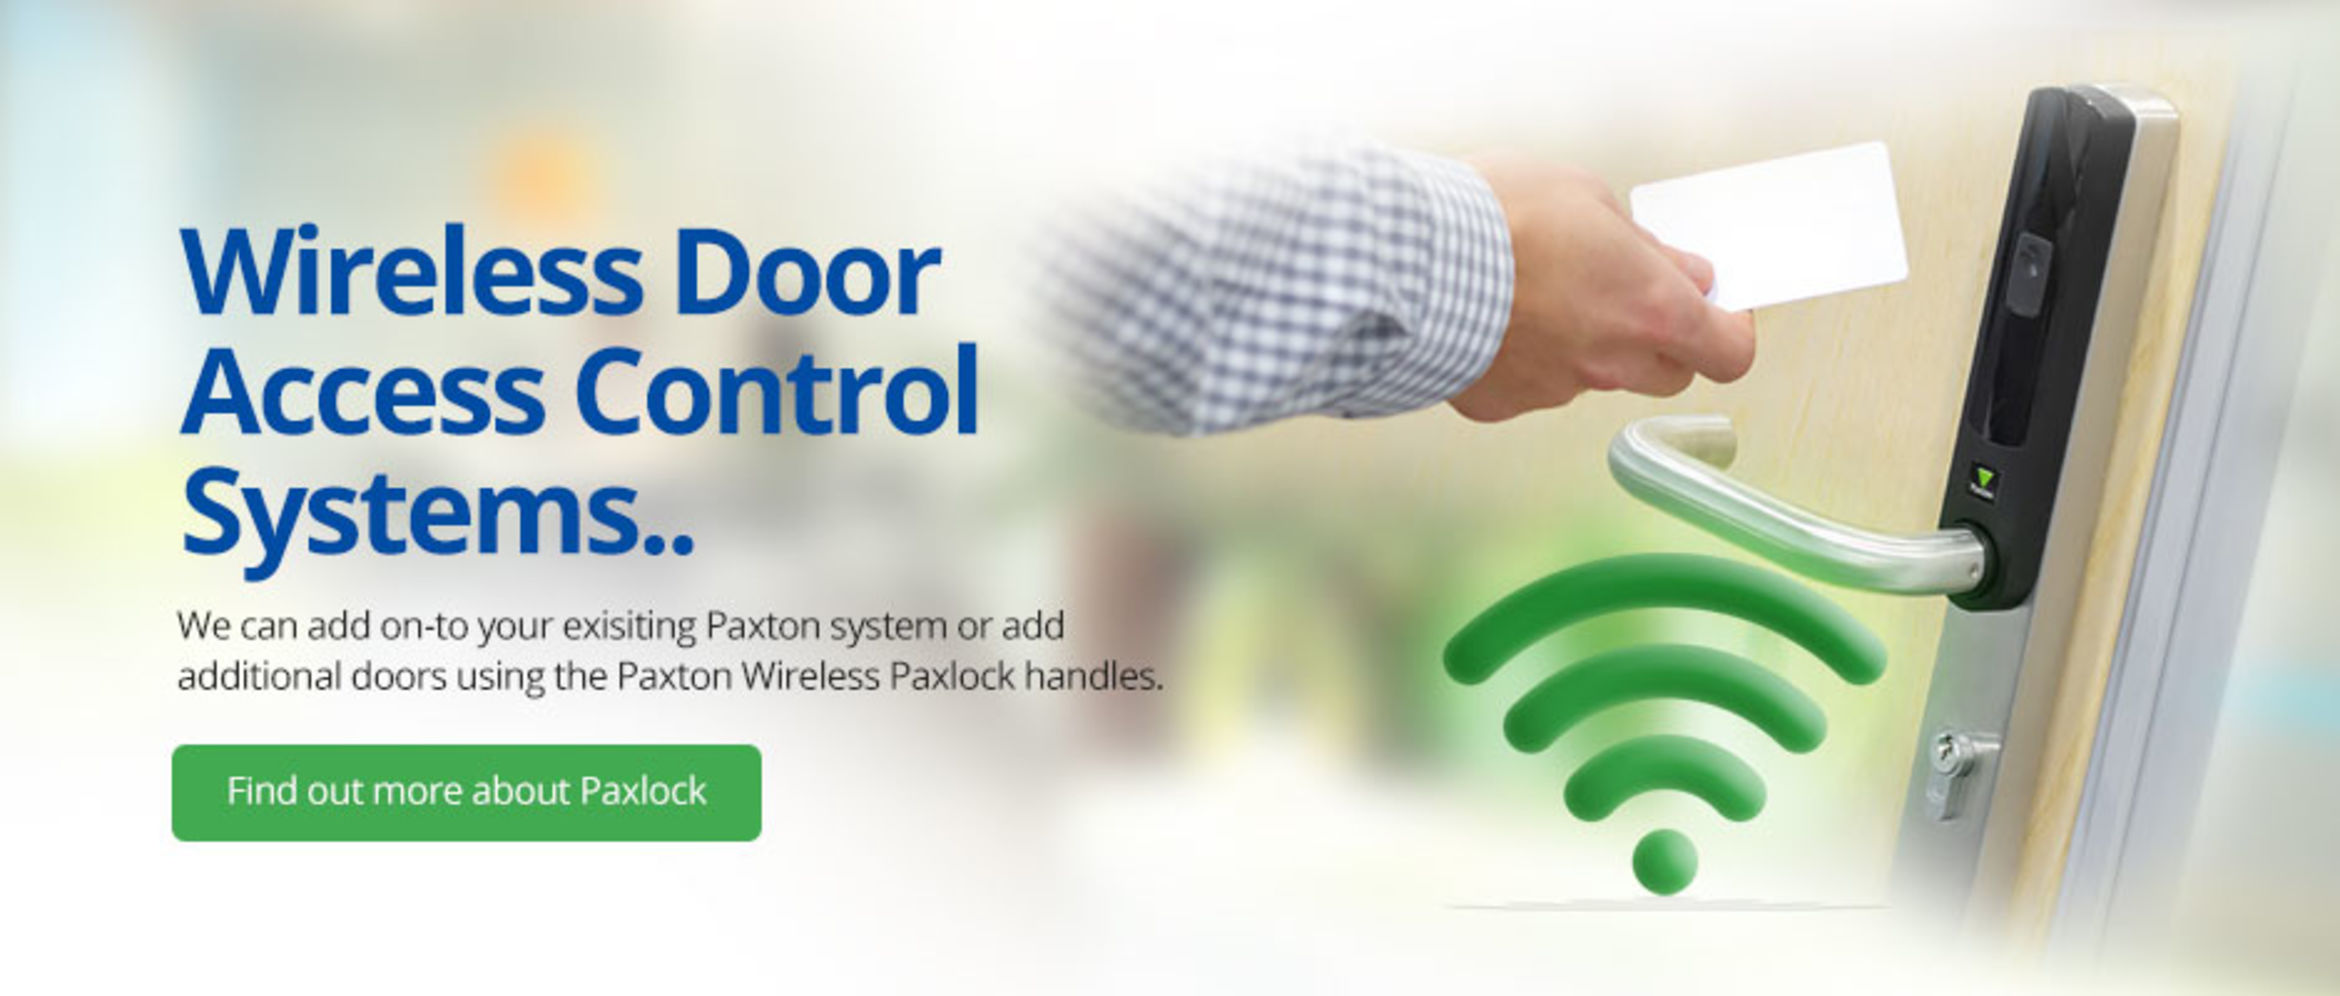 Paxton Wireless Systems